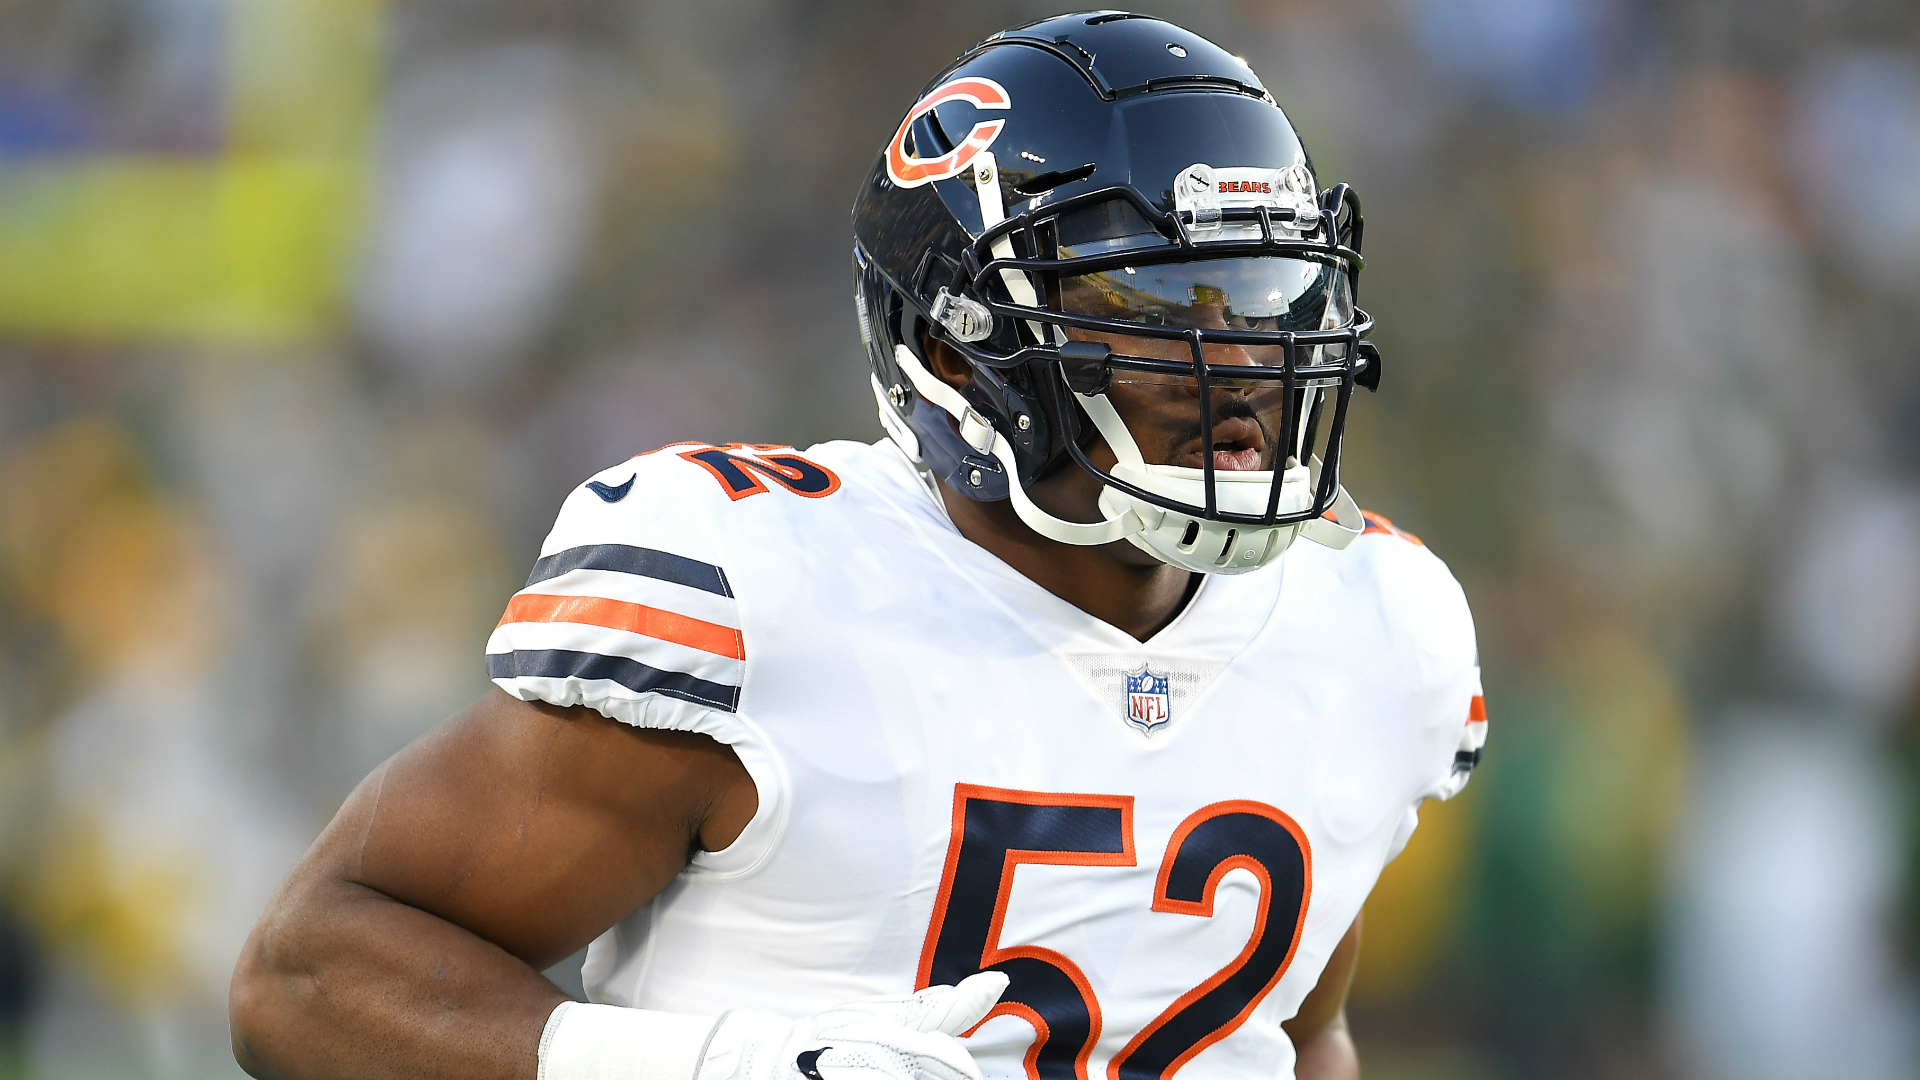 Bears' Khalil Mack 'day-to-day' with ankle injury